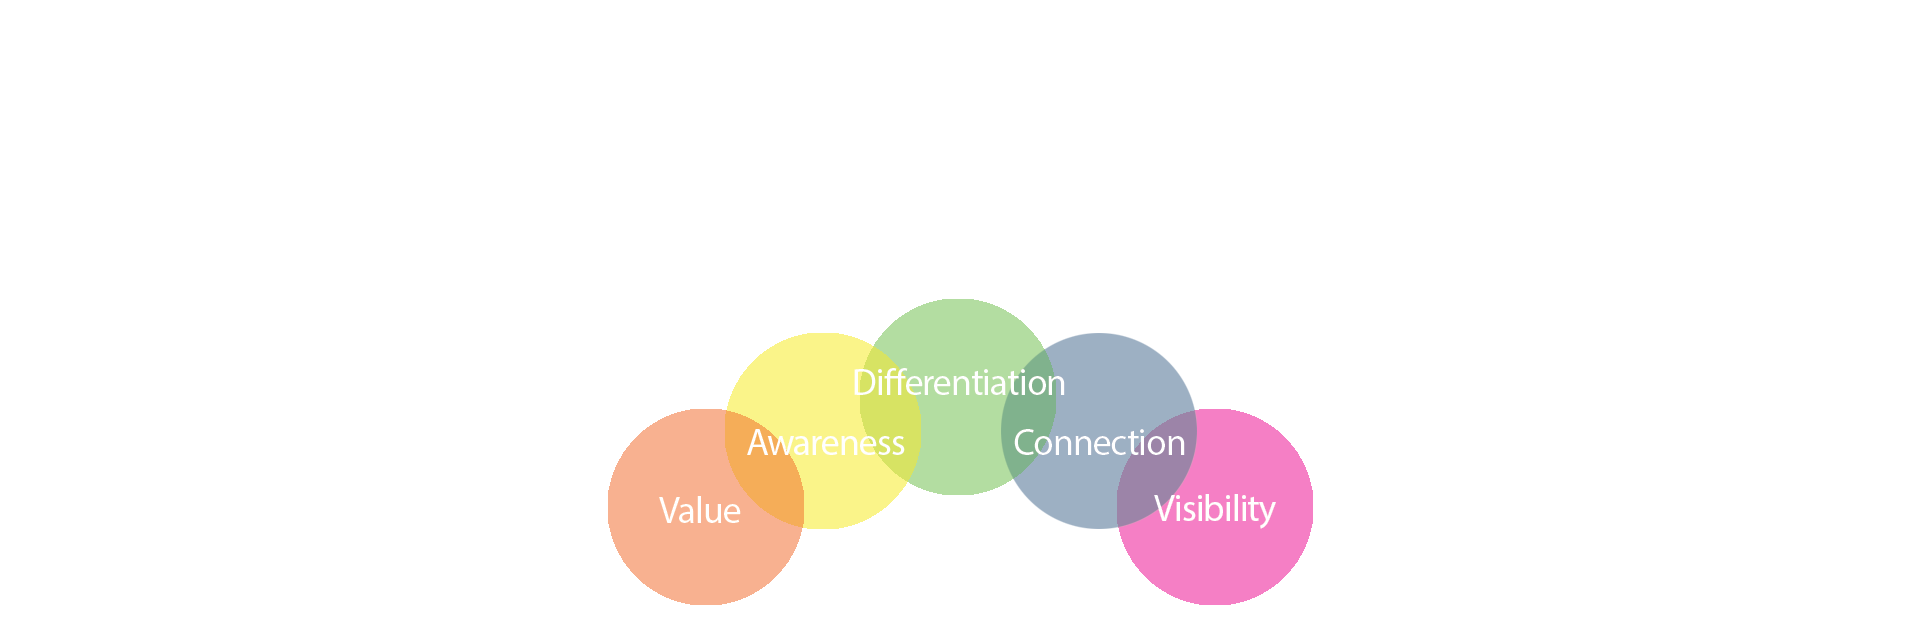 Branding-Strategy-Foreground2-MD-DC-VA